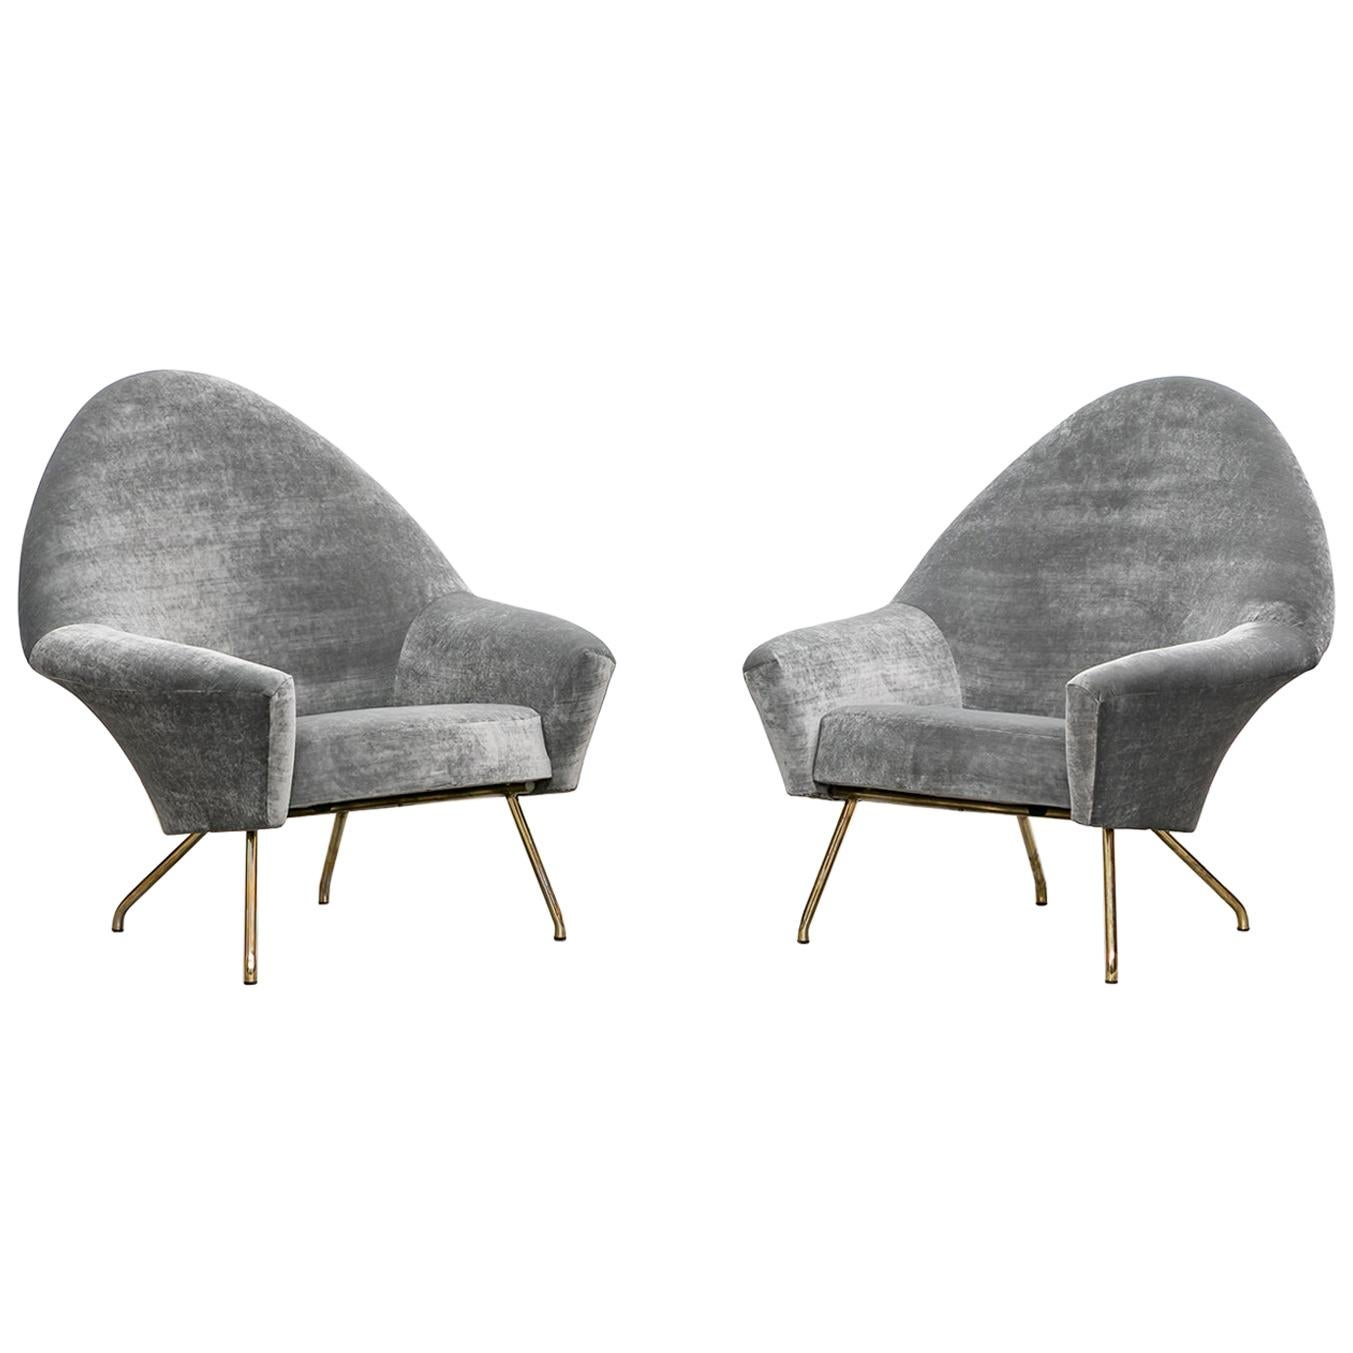 1950s Grey Fabric Lounge Chairs by Joseph-André Motte, New Upholstery